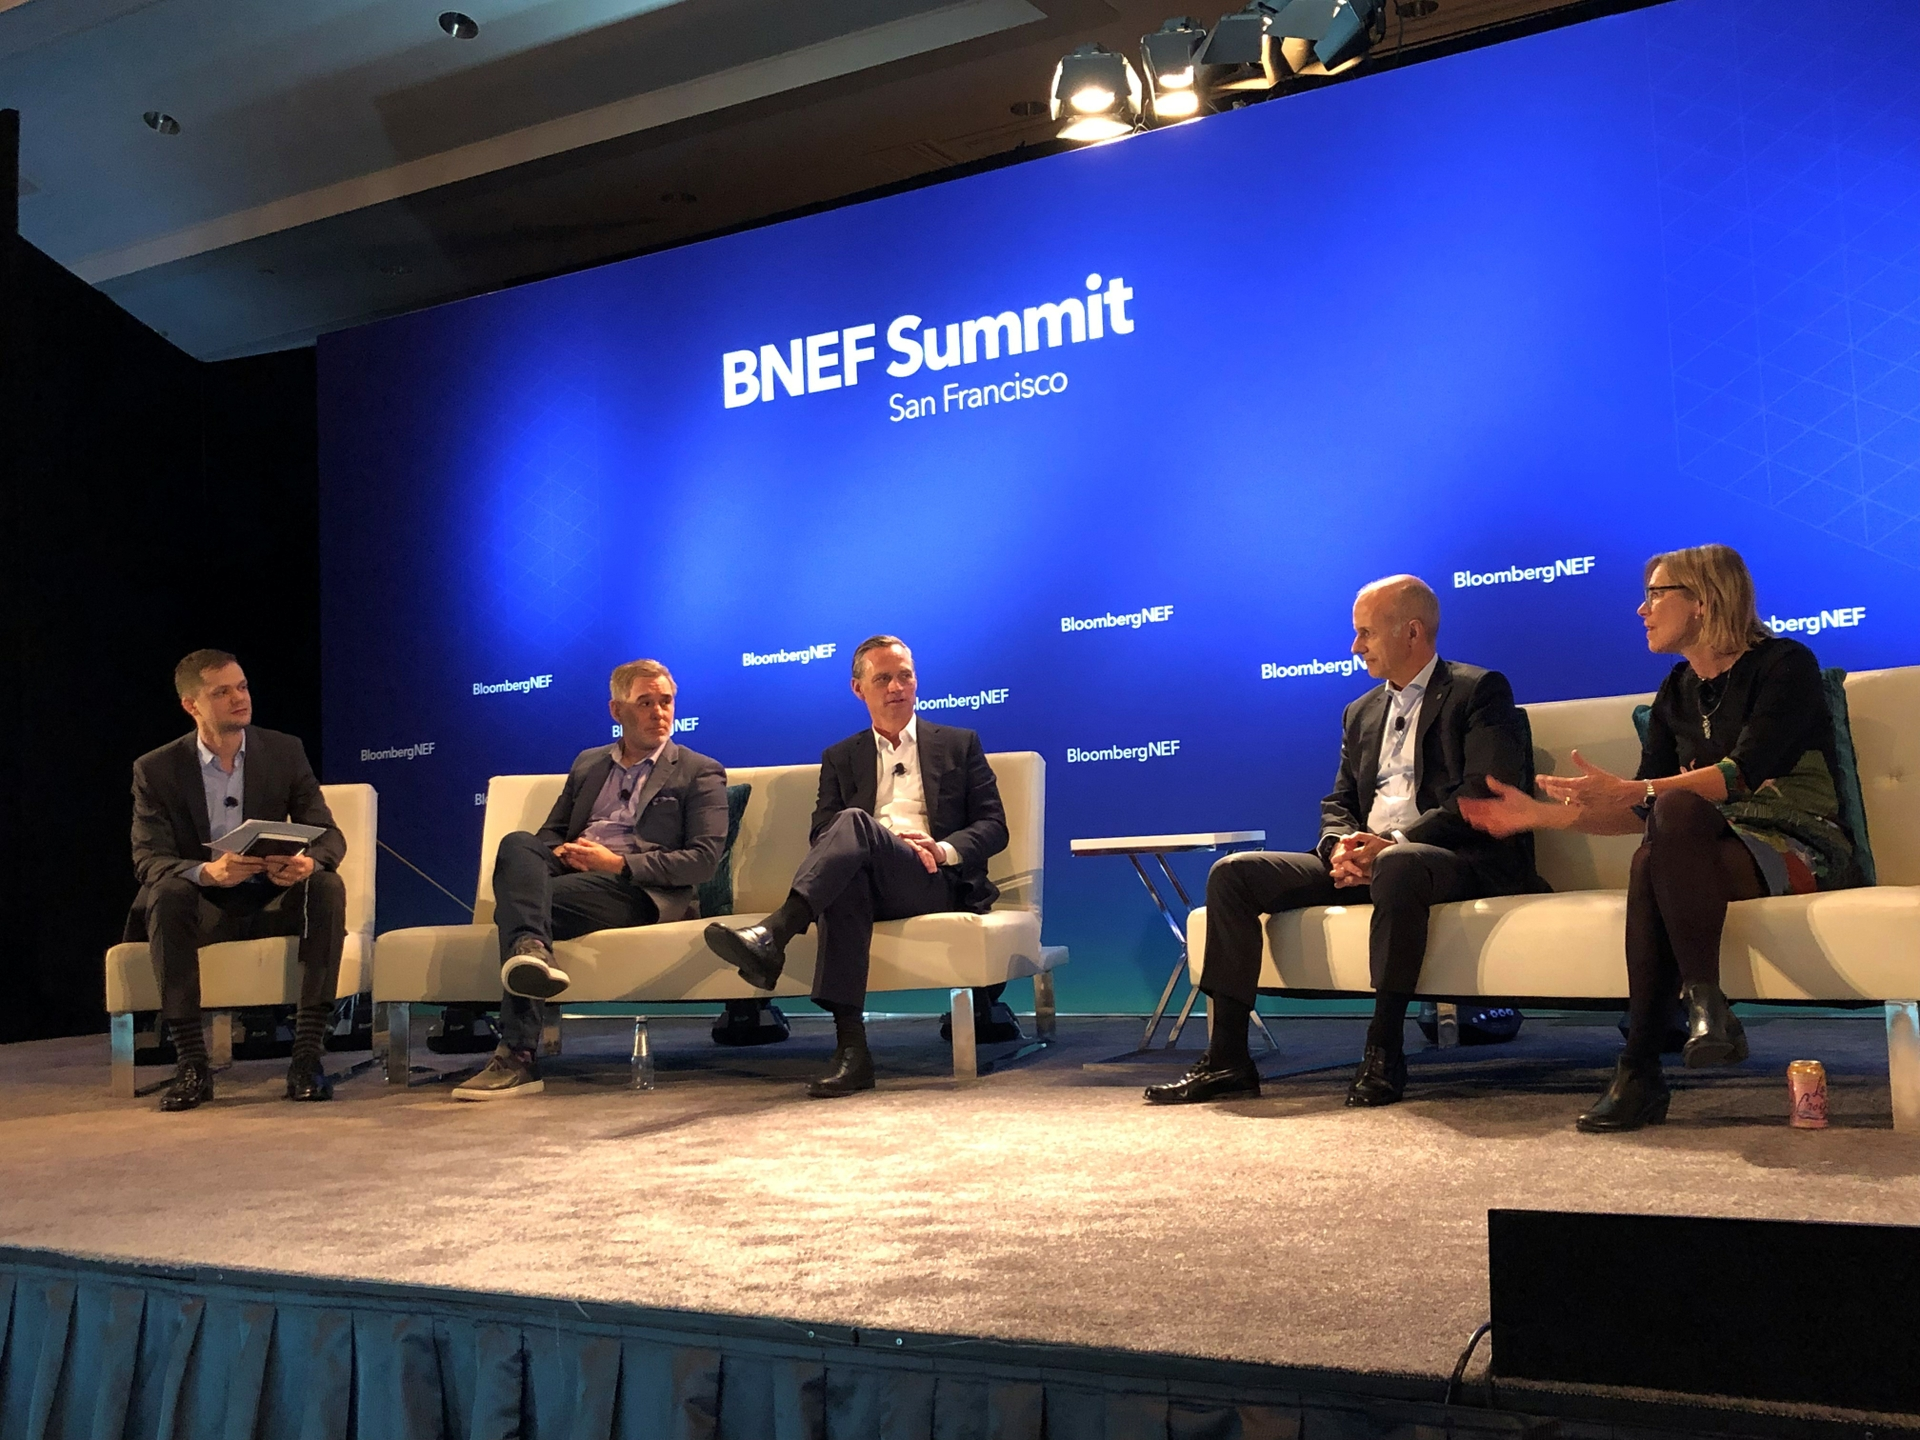 Edison International Senior VP for Strategy and Corporate Development Drew Murphy (center) discusses business models for EV charging at Bloomberg's Future of Mobility Summit in San Francisco.